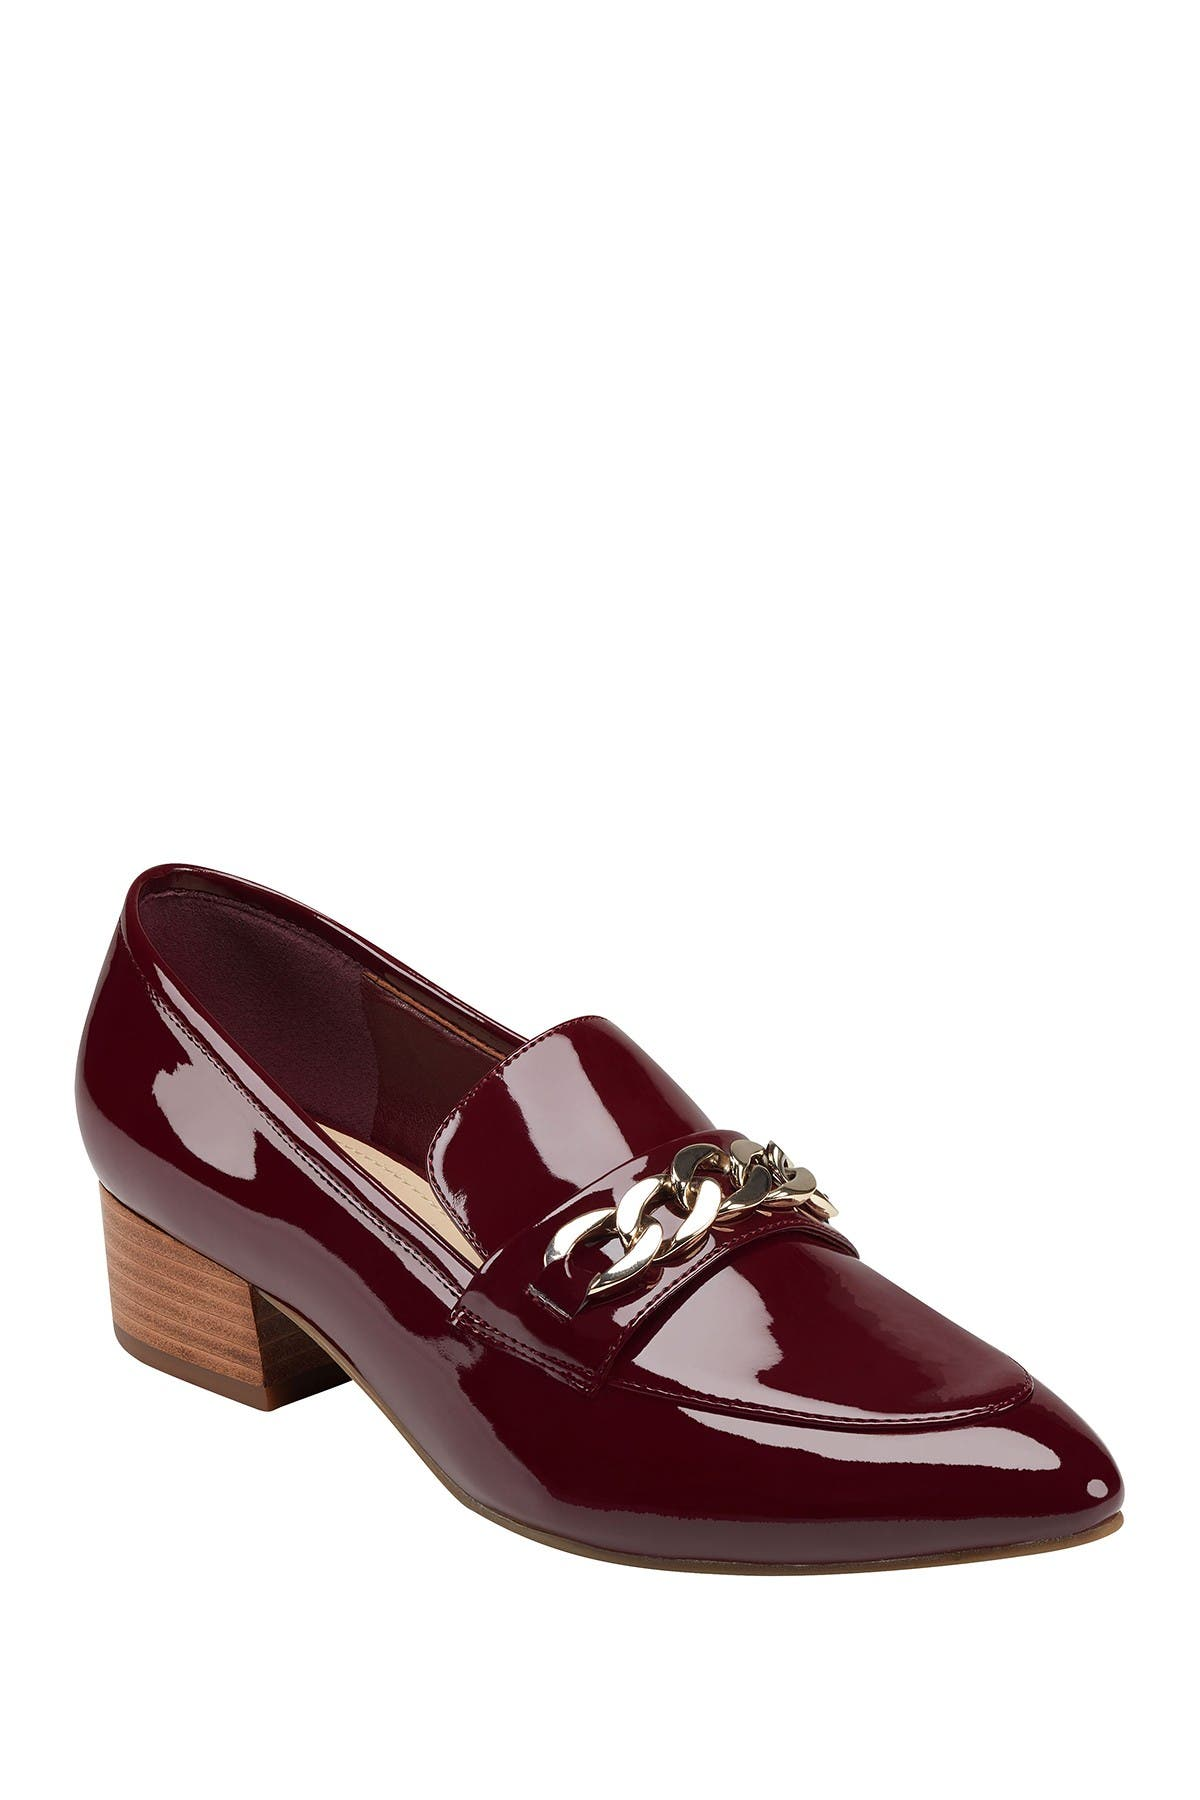 Image of Marc Fisher Chain Bit Heeled Loafer